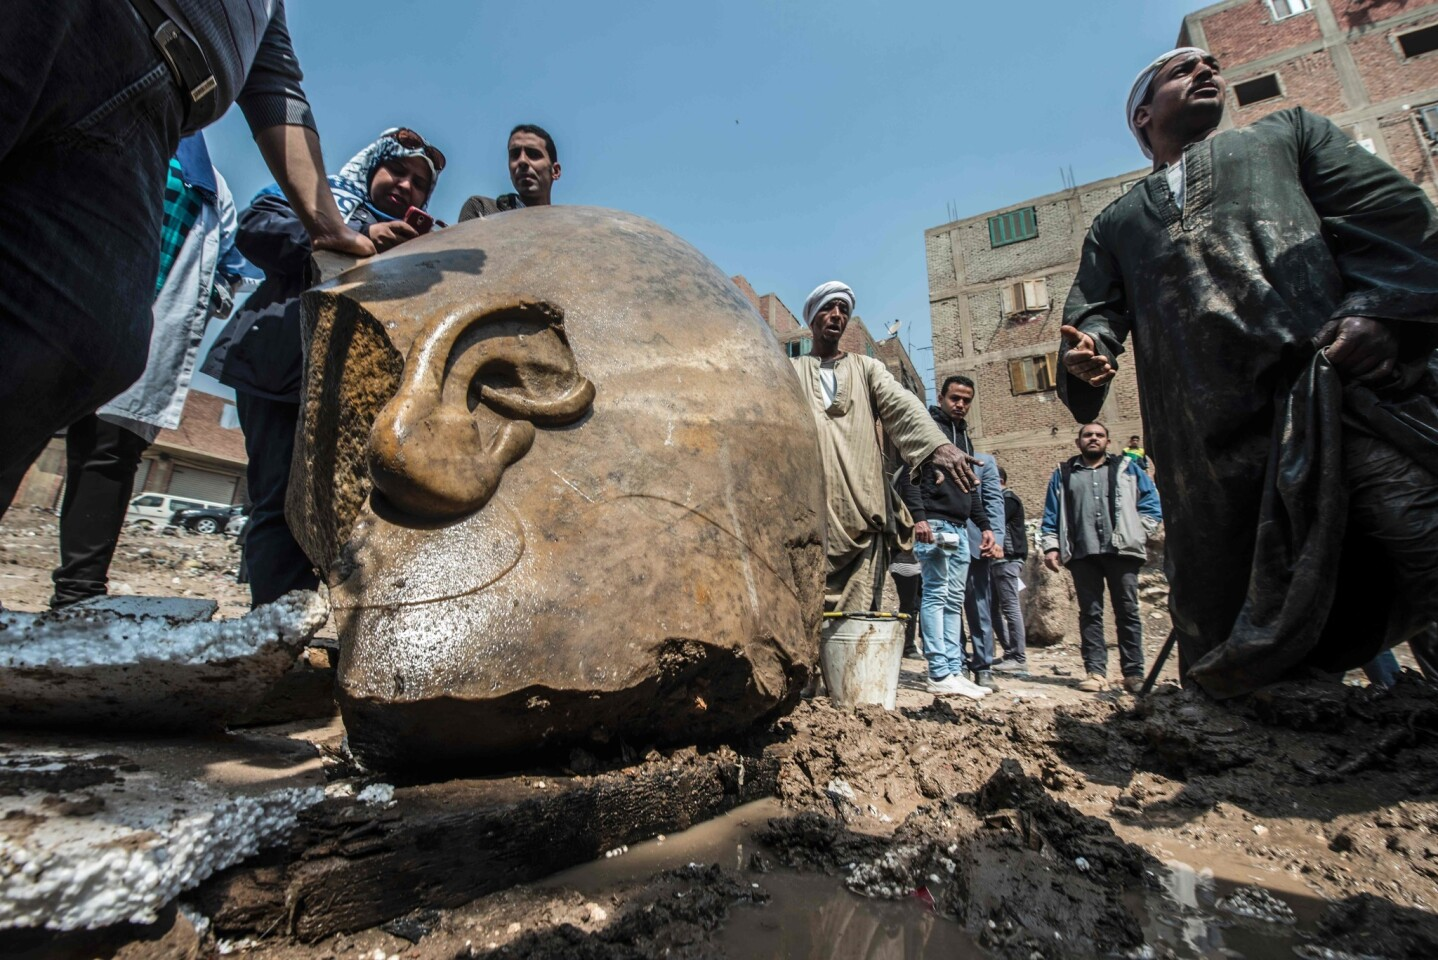 Egyptian workers look at the site of a discovery by a team of German-Egyptian archaeologists in Cairo's Mattarya district. Statues of the kings and queens of the 19th dynasty (1295-1185 B.C.) were unearthed in the vicinity of the Temple of Ramses II in what was the old pharonic city.